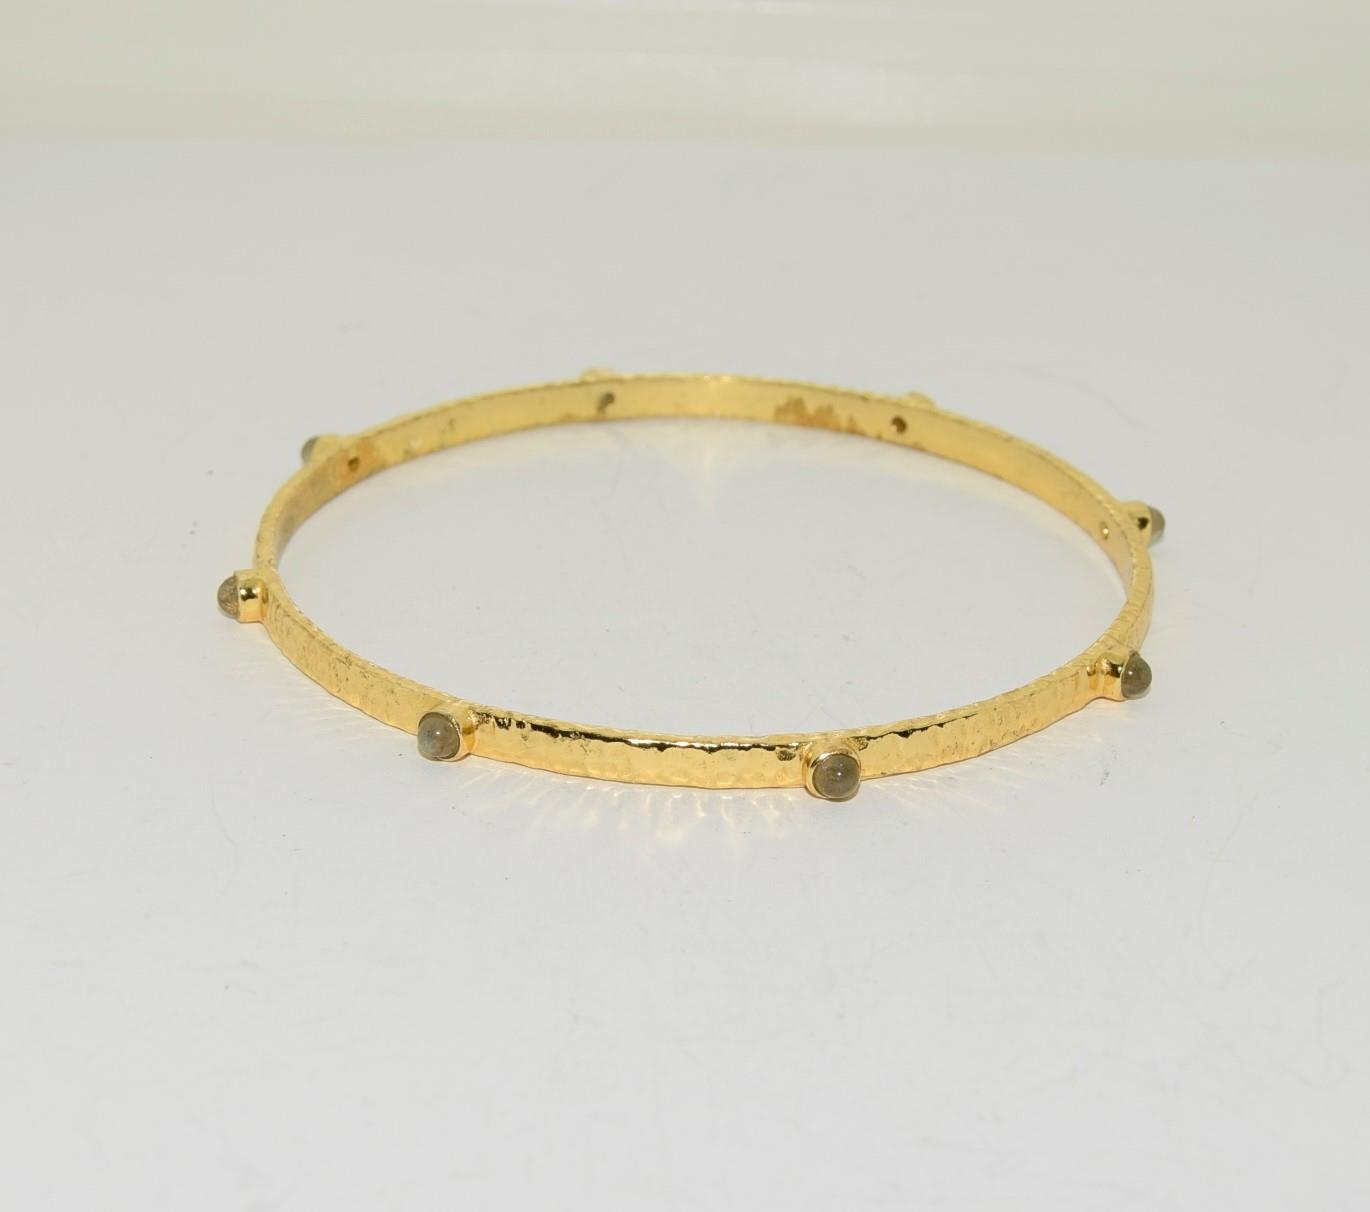 Two moonstone and crysophase gilded bangles. - Image 3 of 3